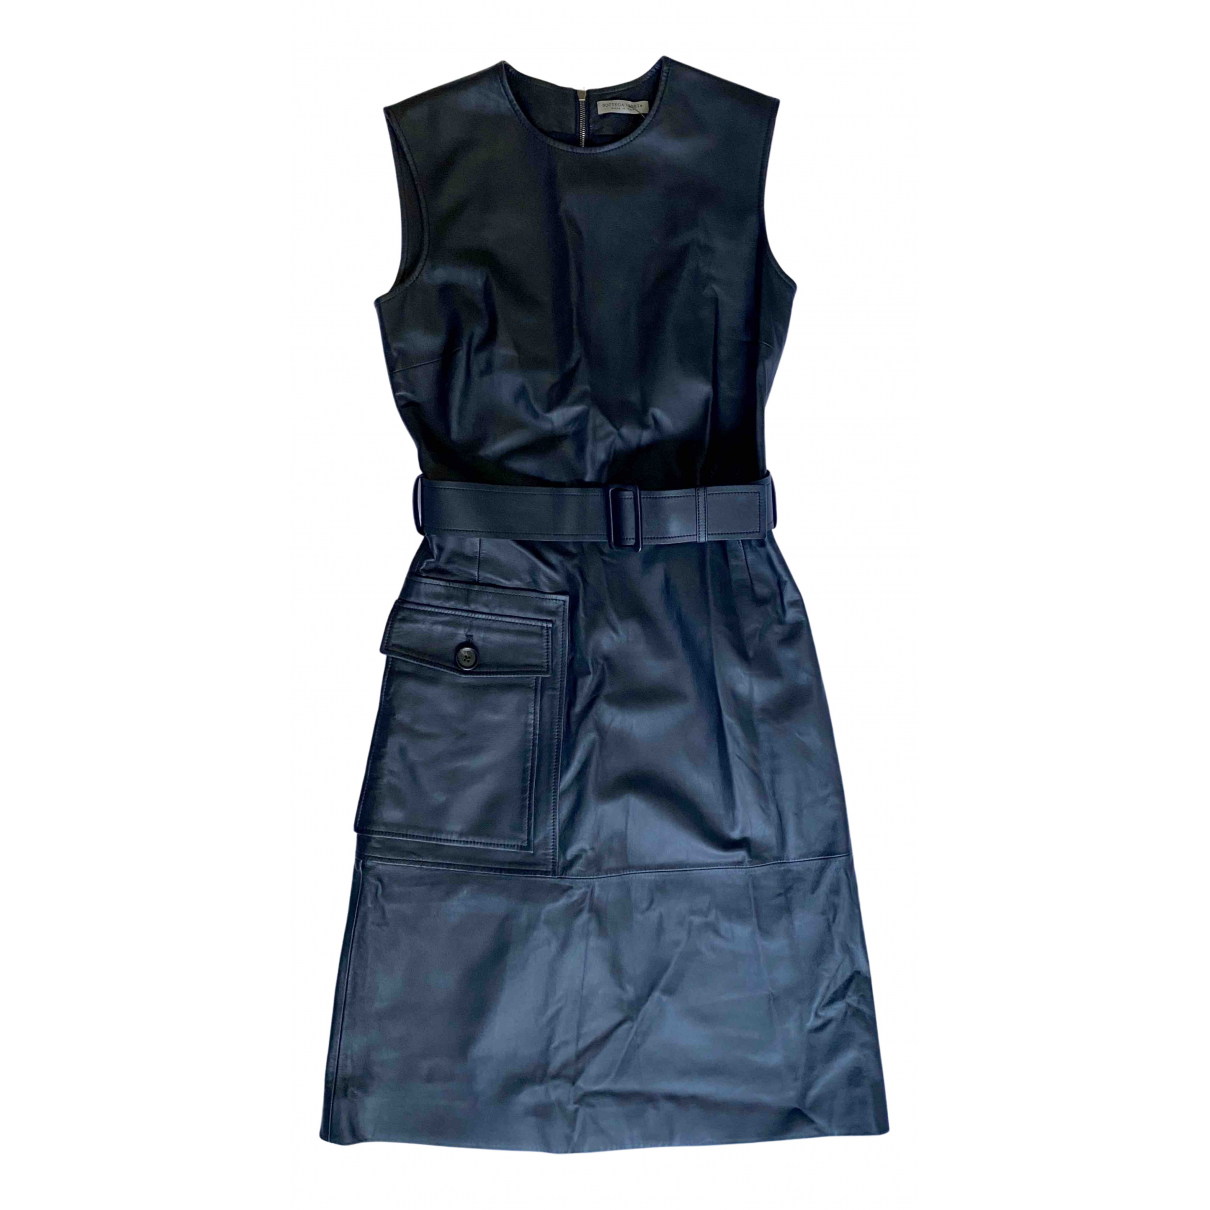 Bottega Veneta N Black Leather dress for Women 38 IT